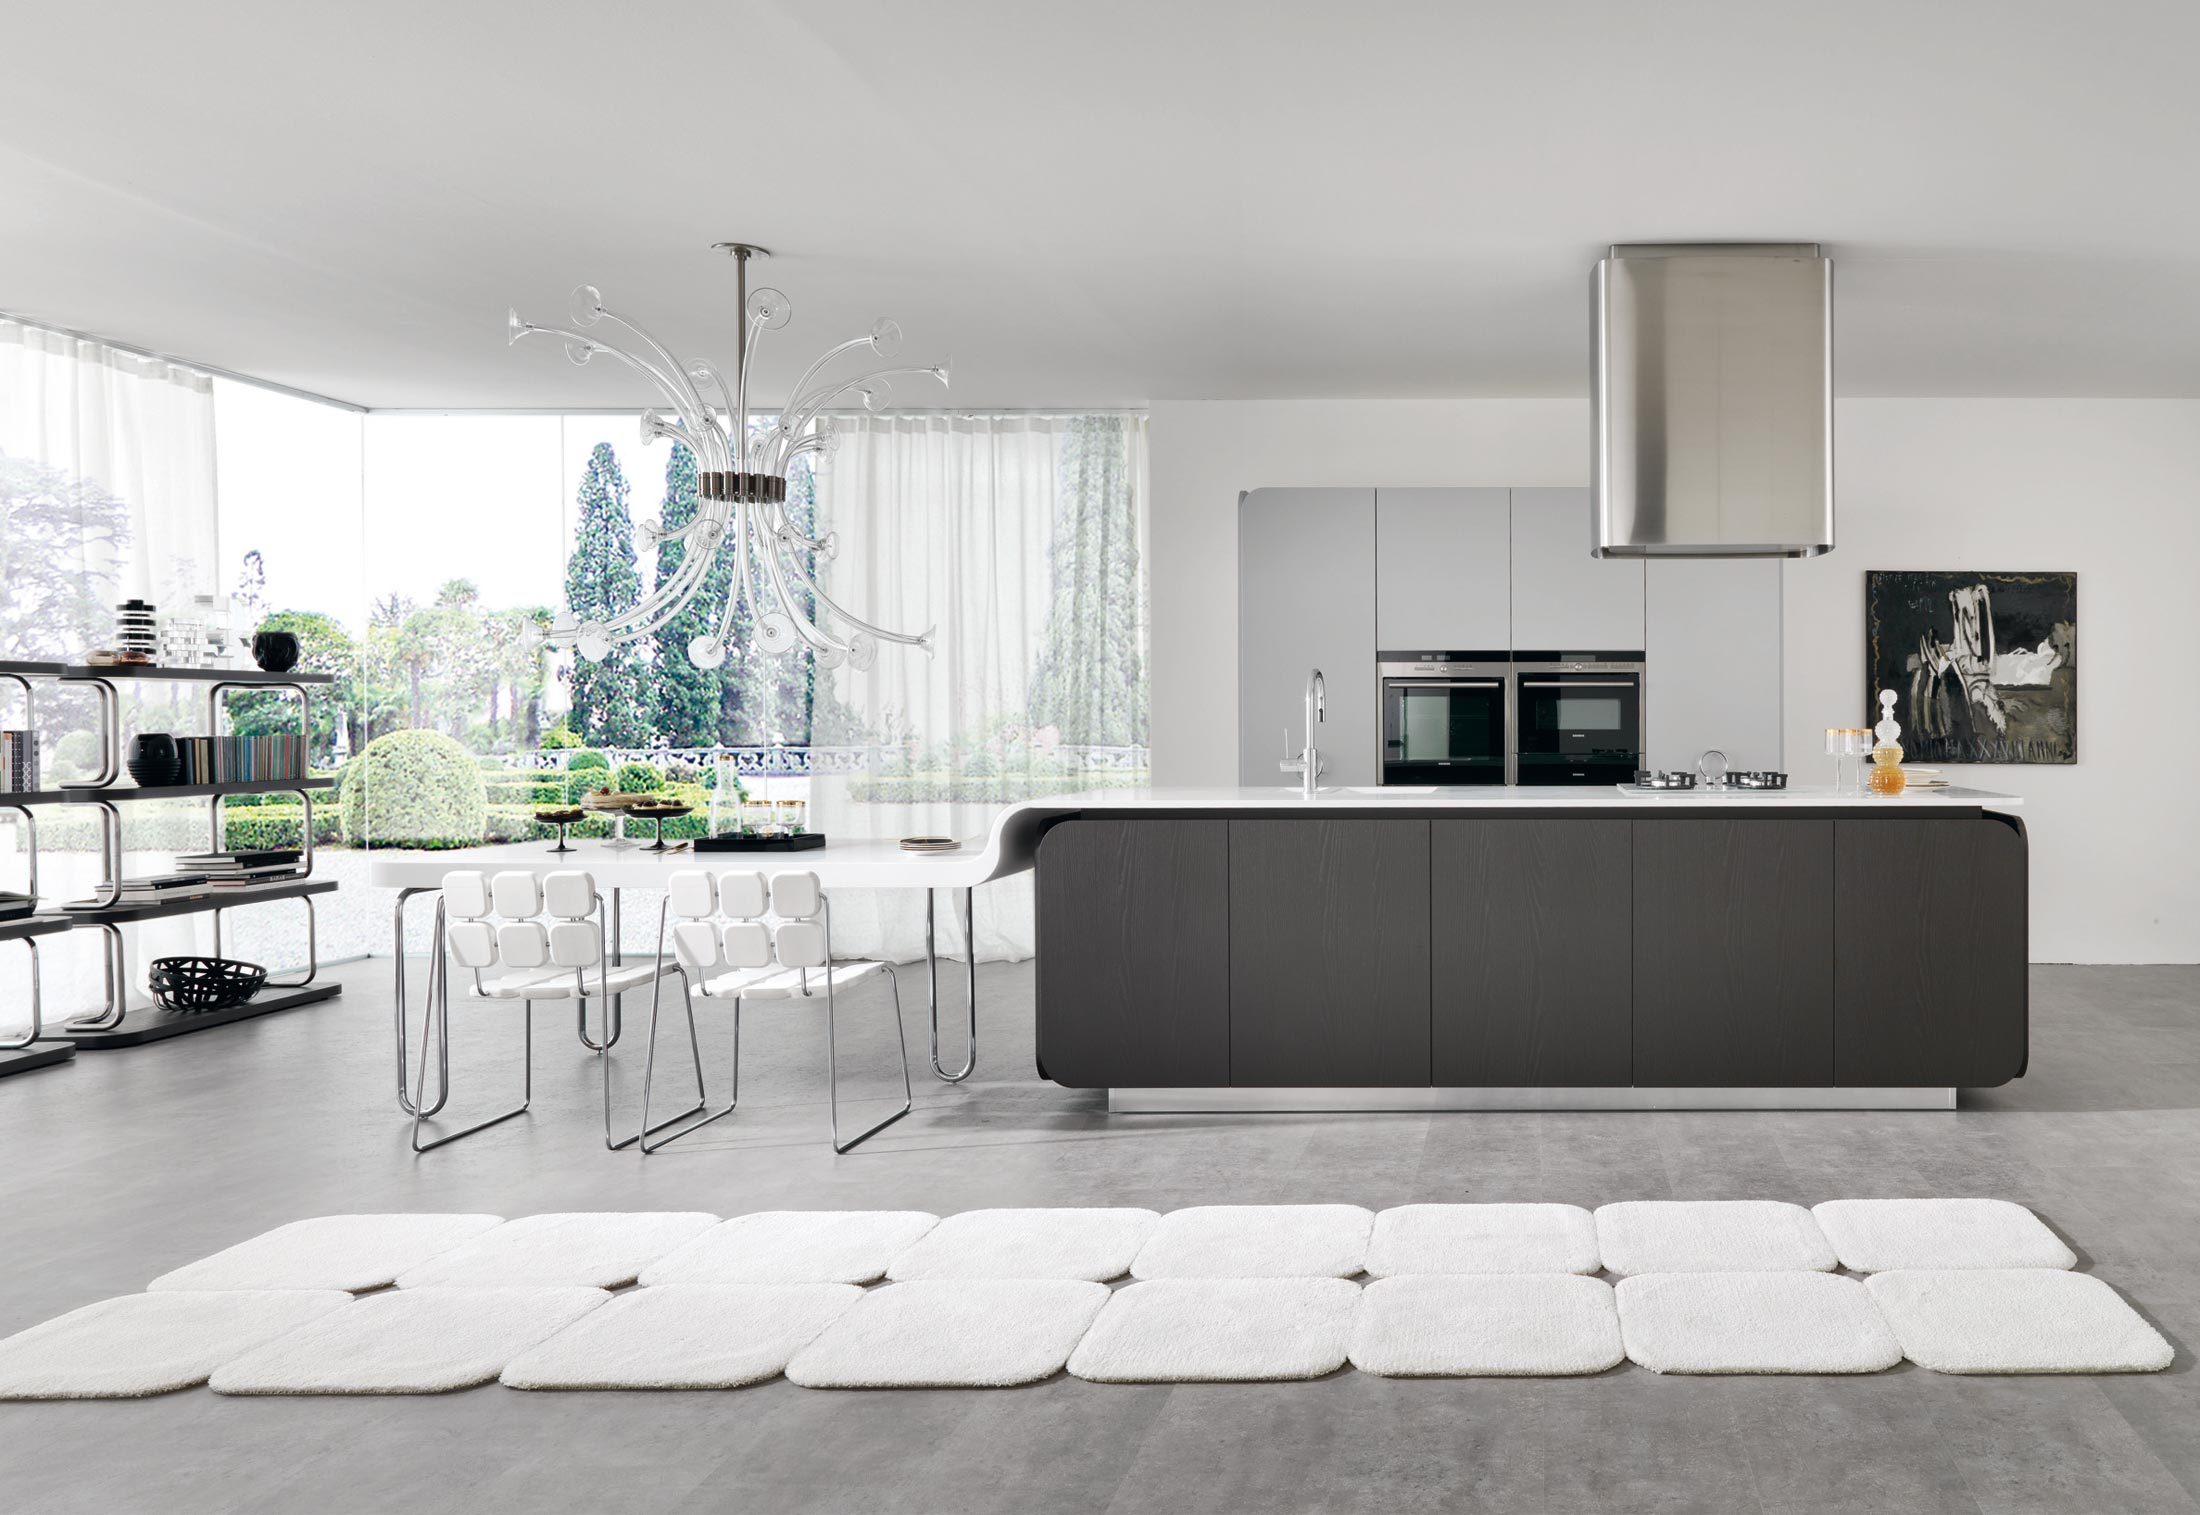 Solid Alpine White, IT-IS in the Kitchen by HI-MACS® | STYLEPARK